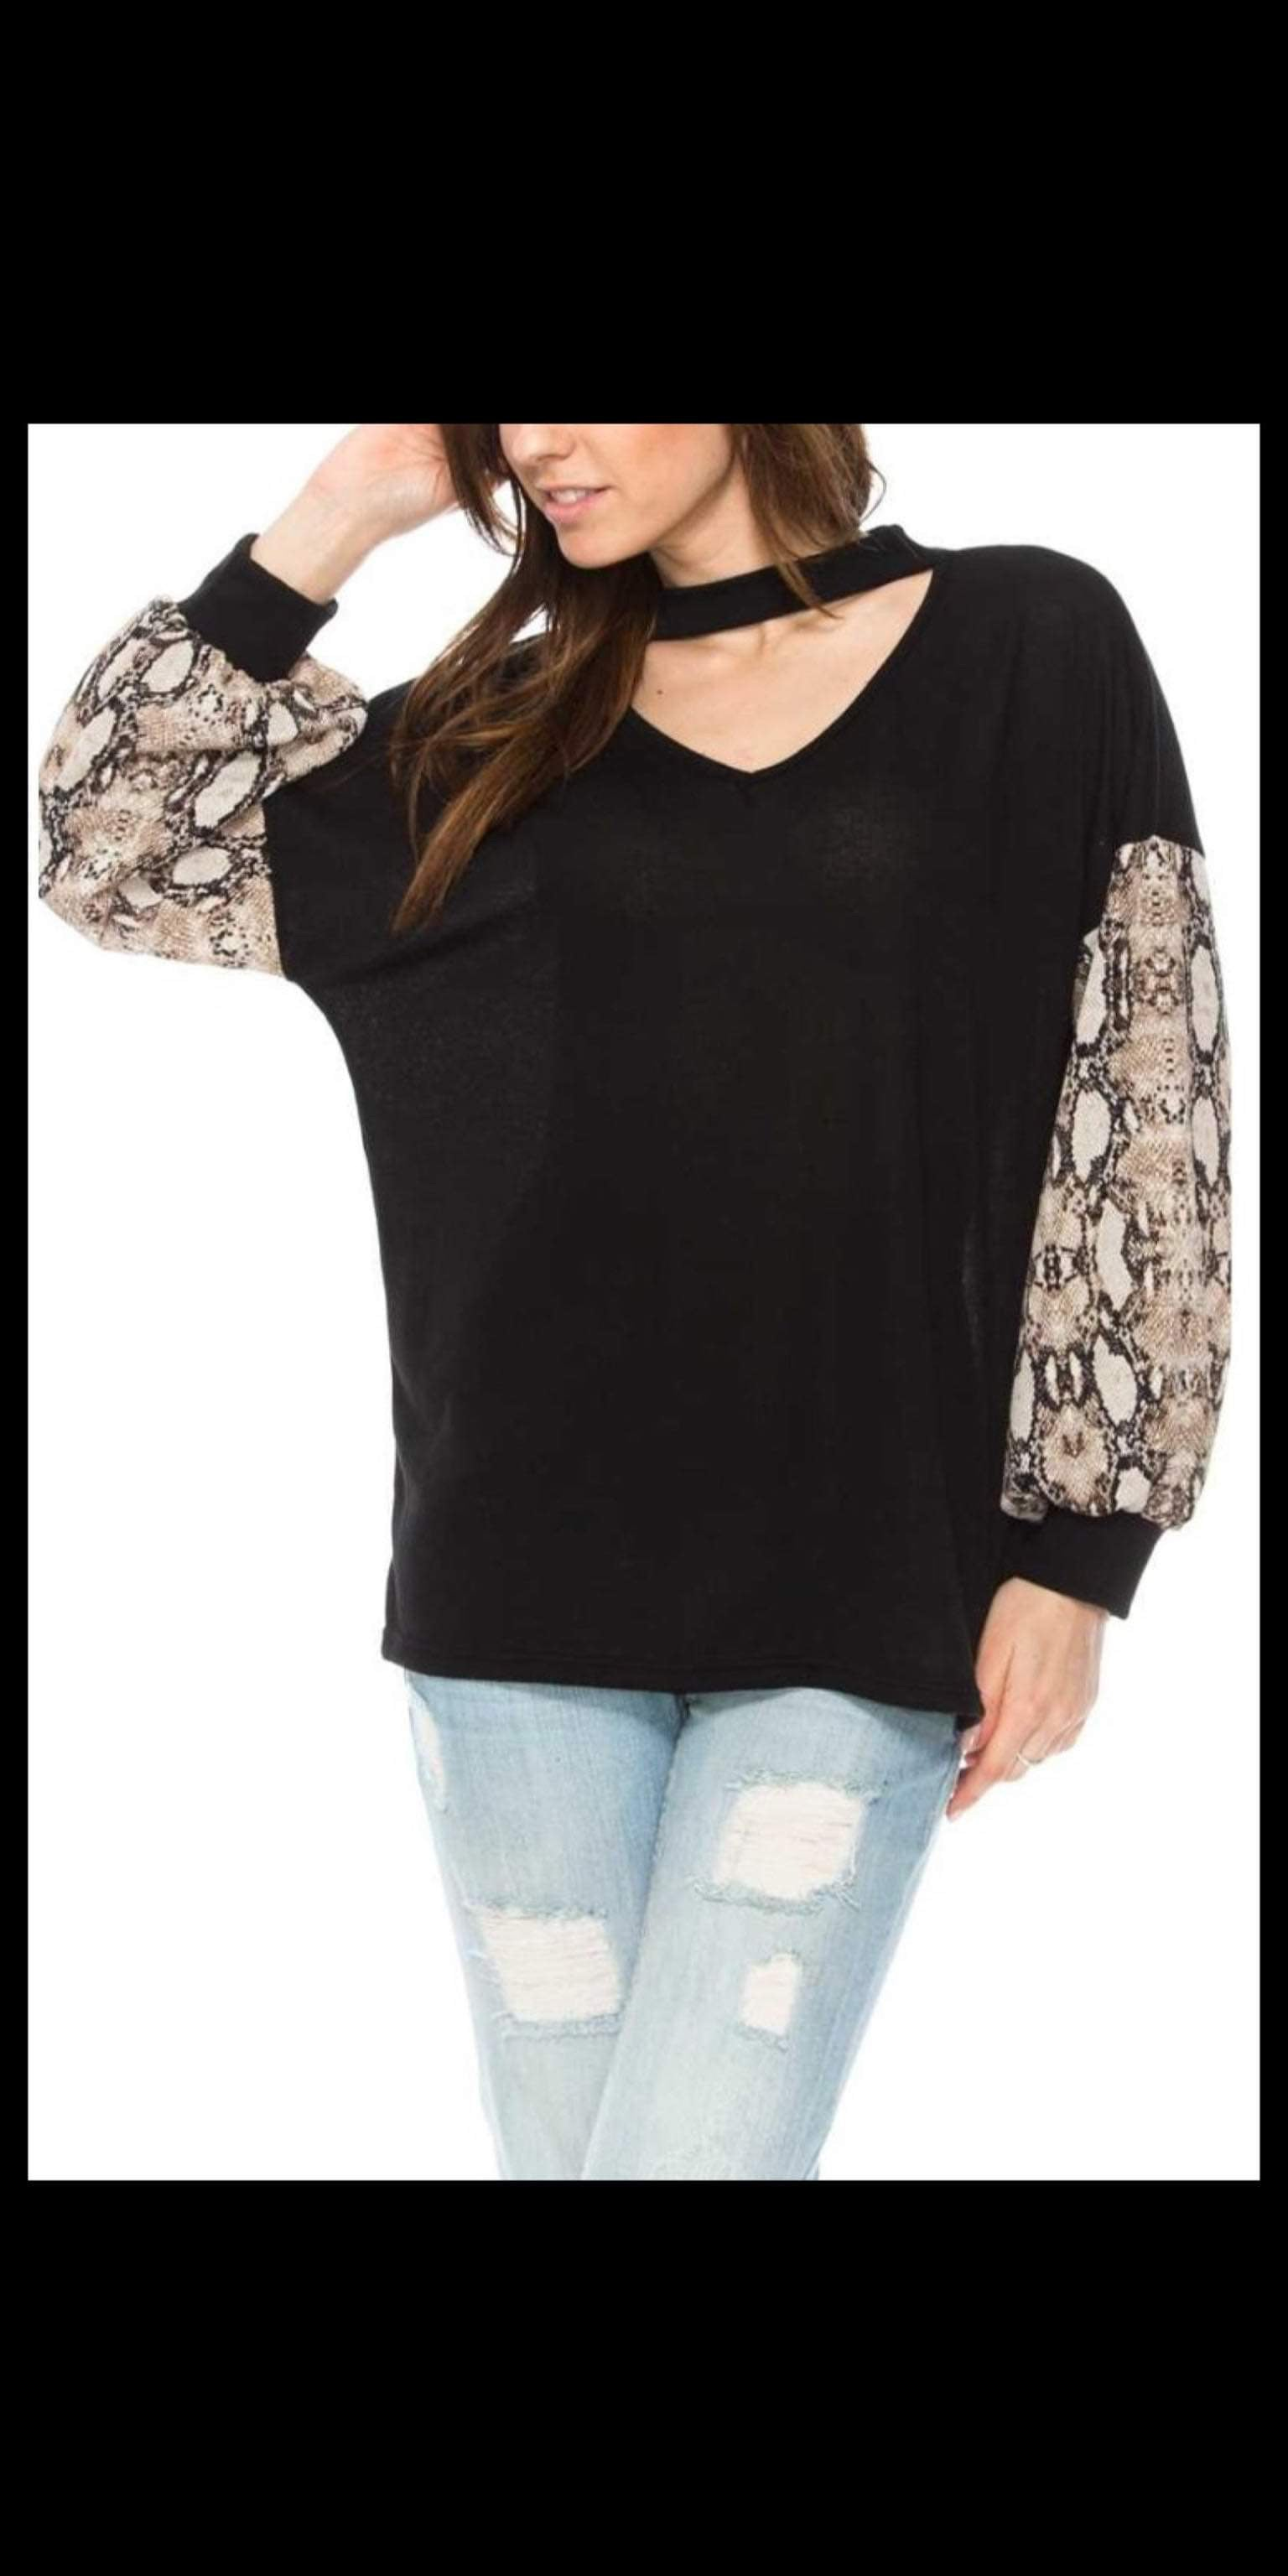 Rosewood Snakeskin Bubble Top - Also in Plus Size